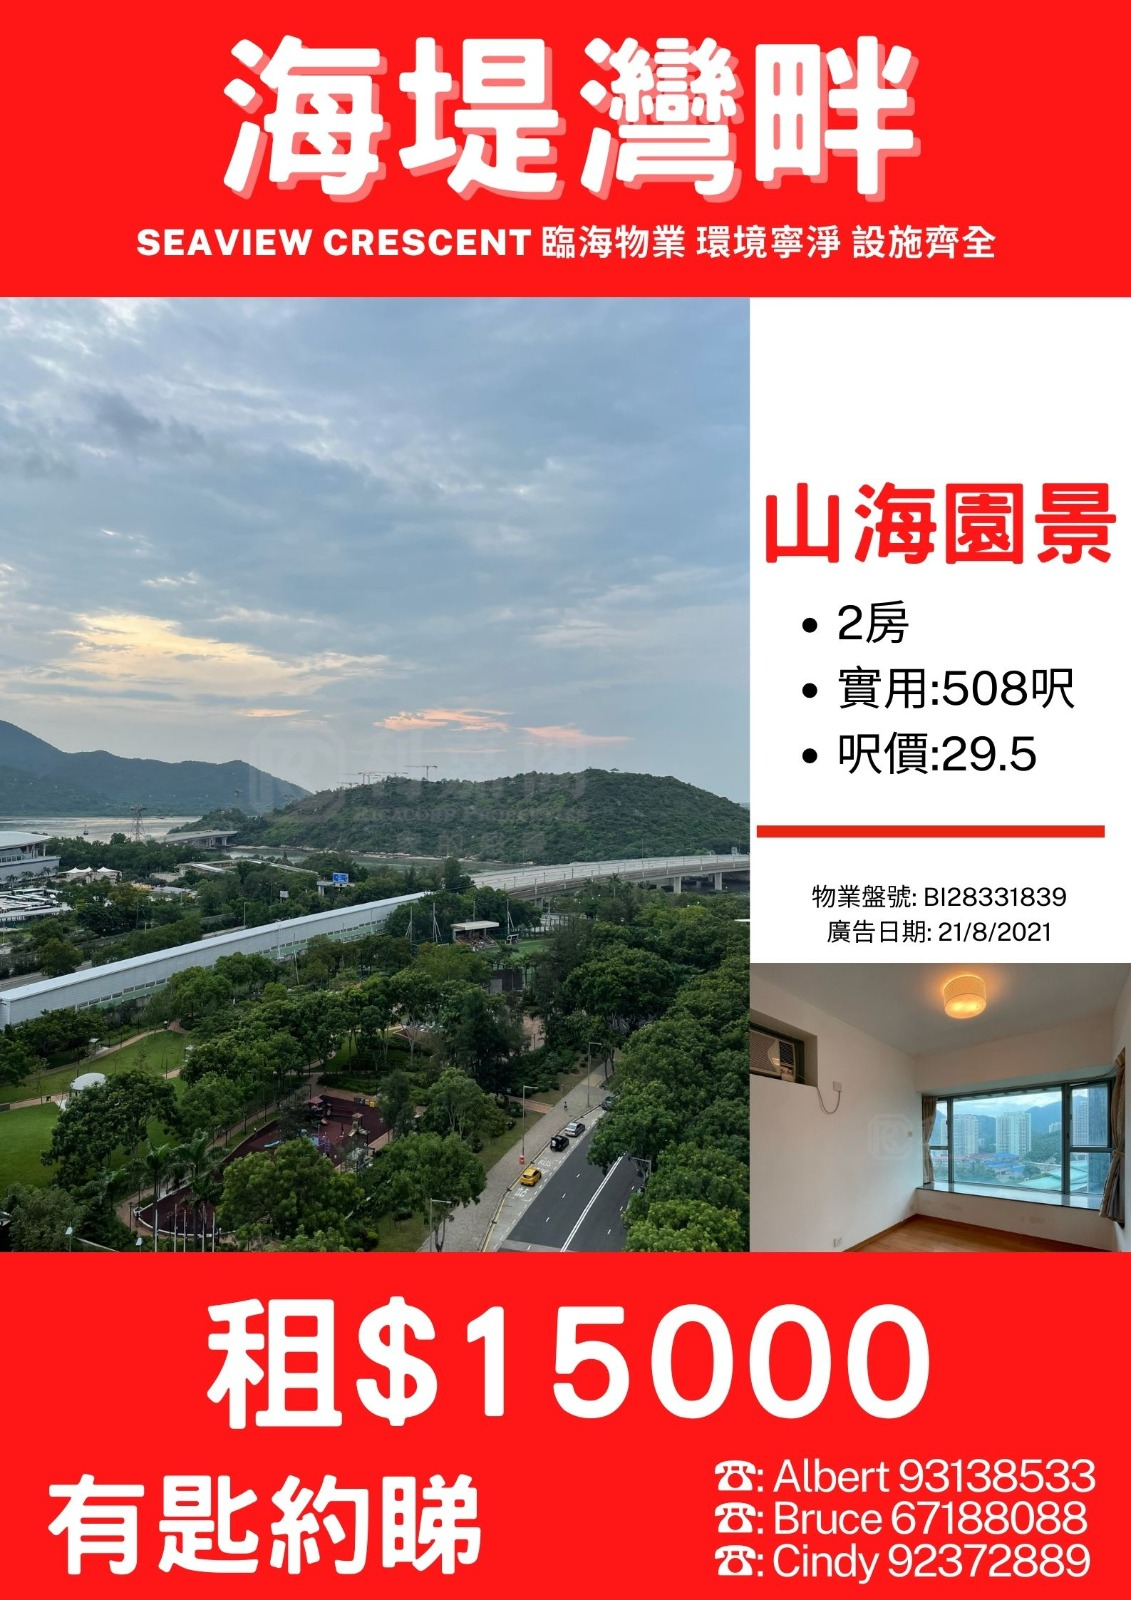 Exquisite two-bedroom seawall, open and open landscape, with a spoon, you can see 67188088 Chen Sheng